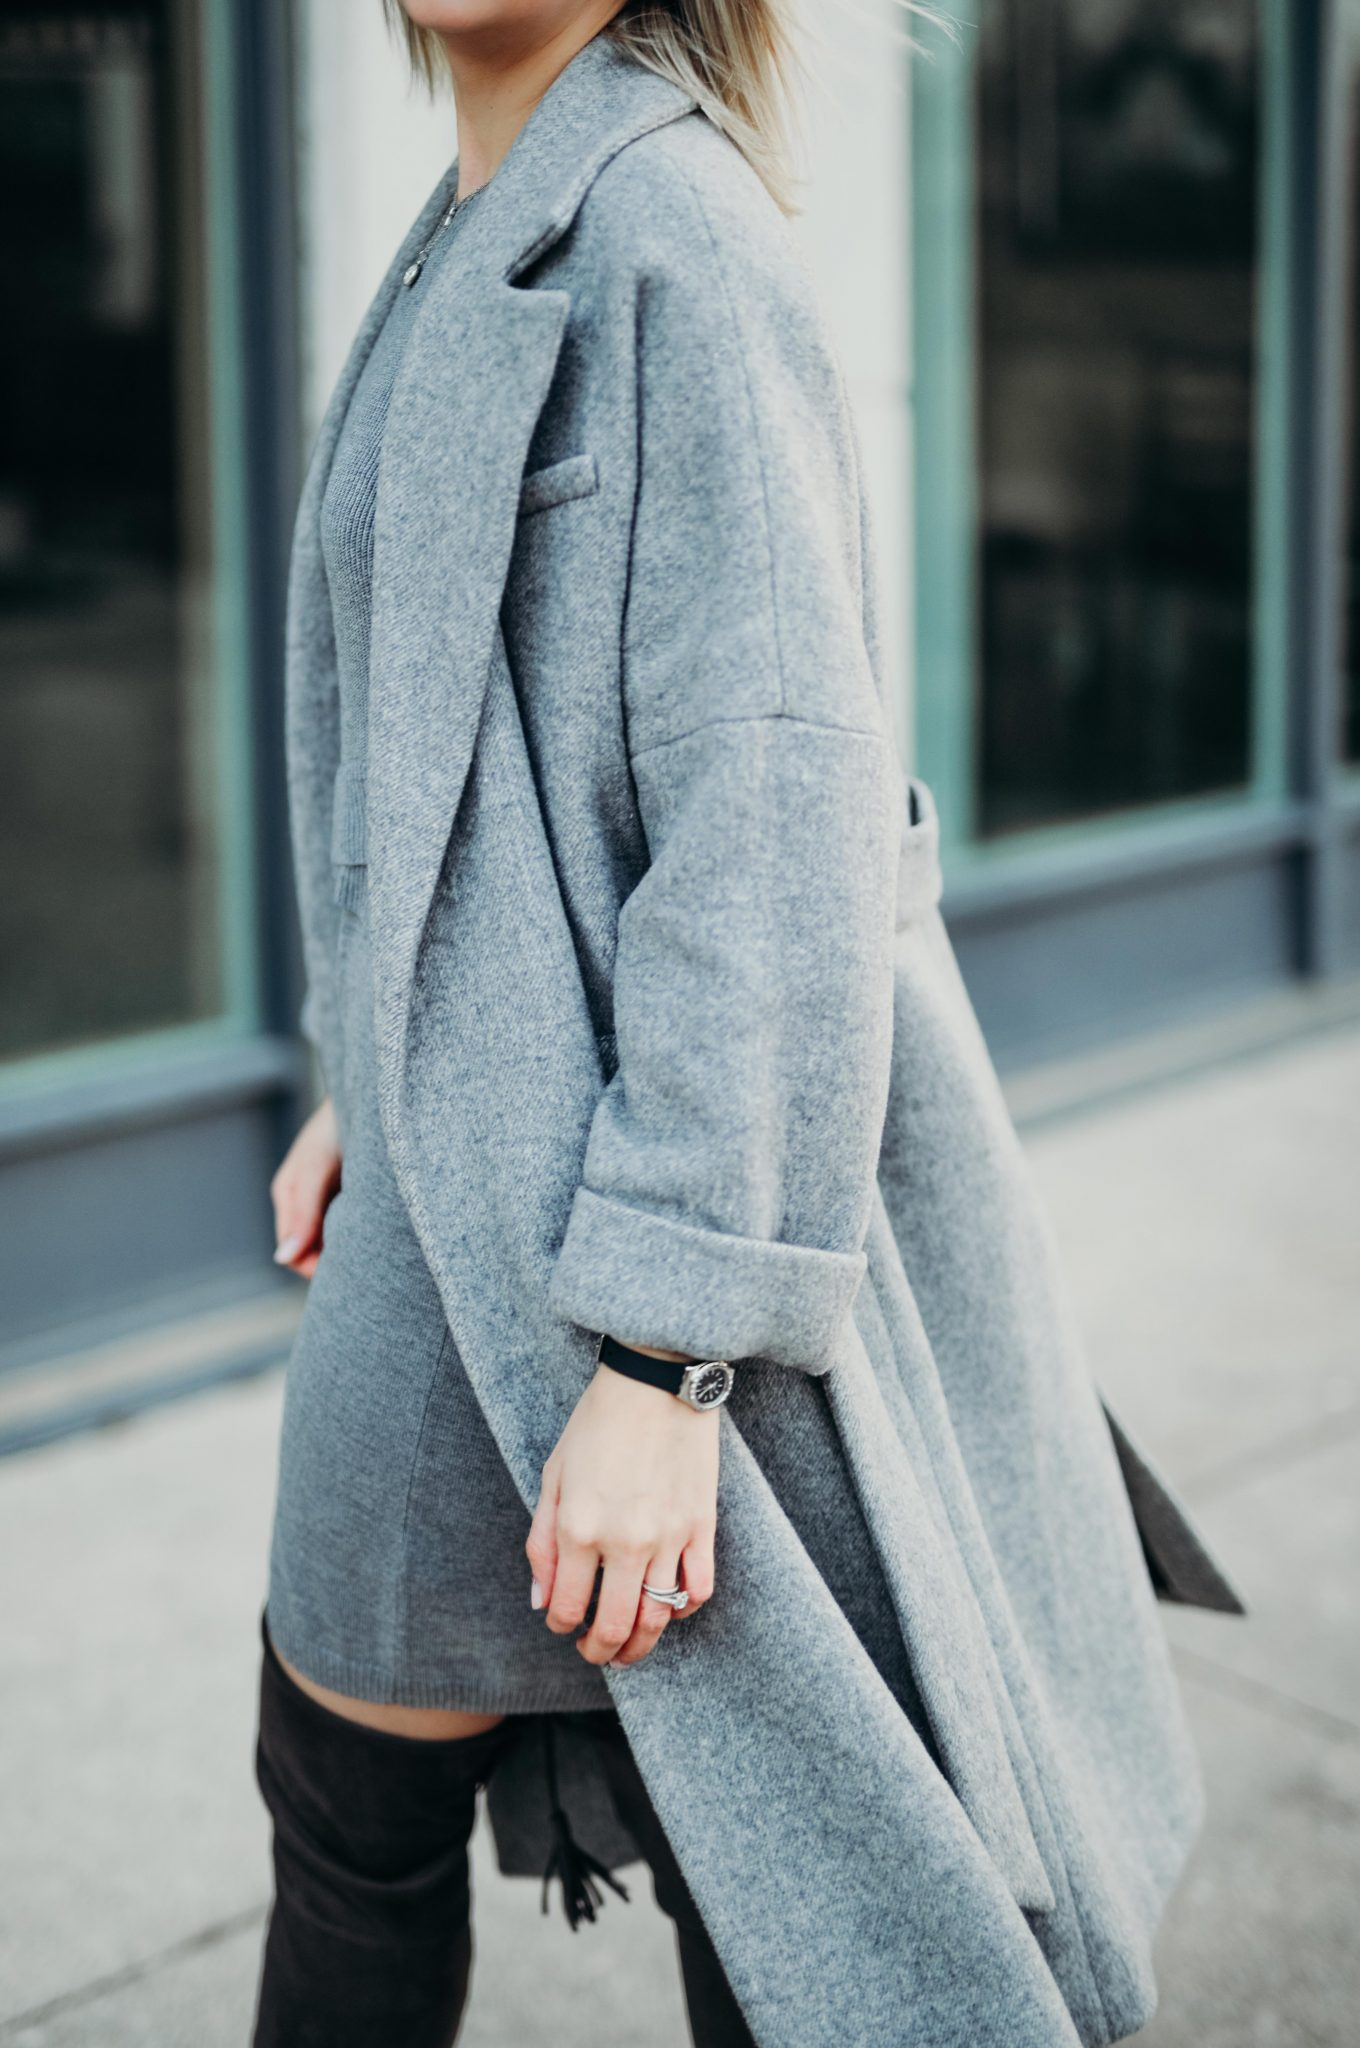 grey knit dress & long coat (7 of 10)